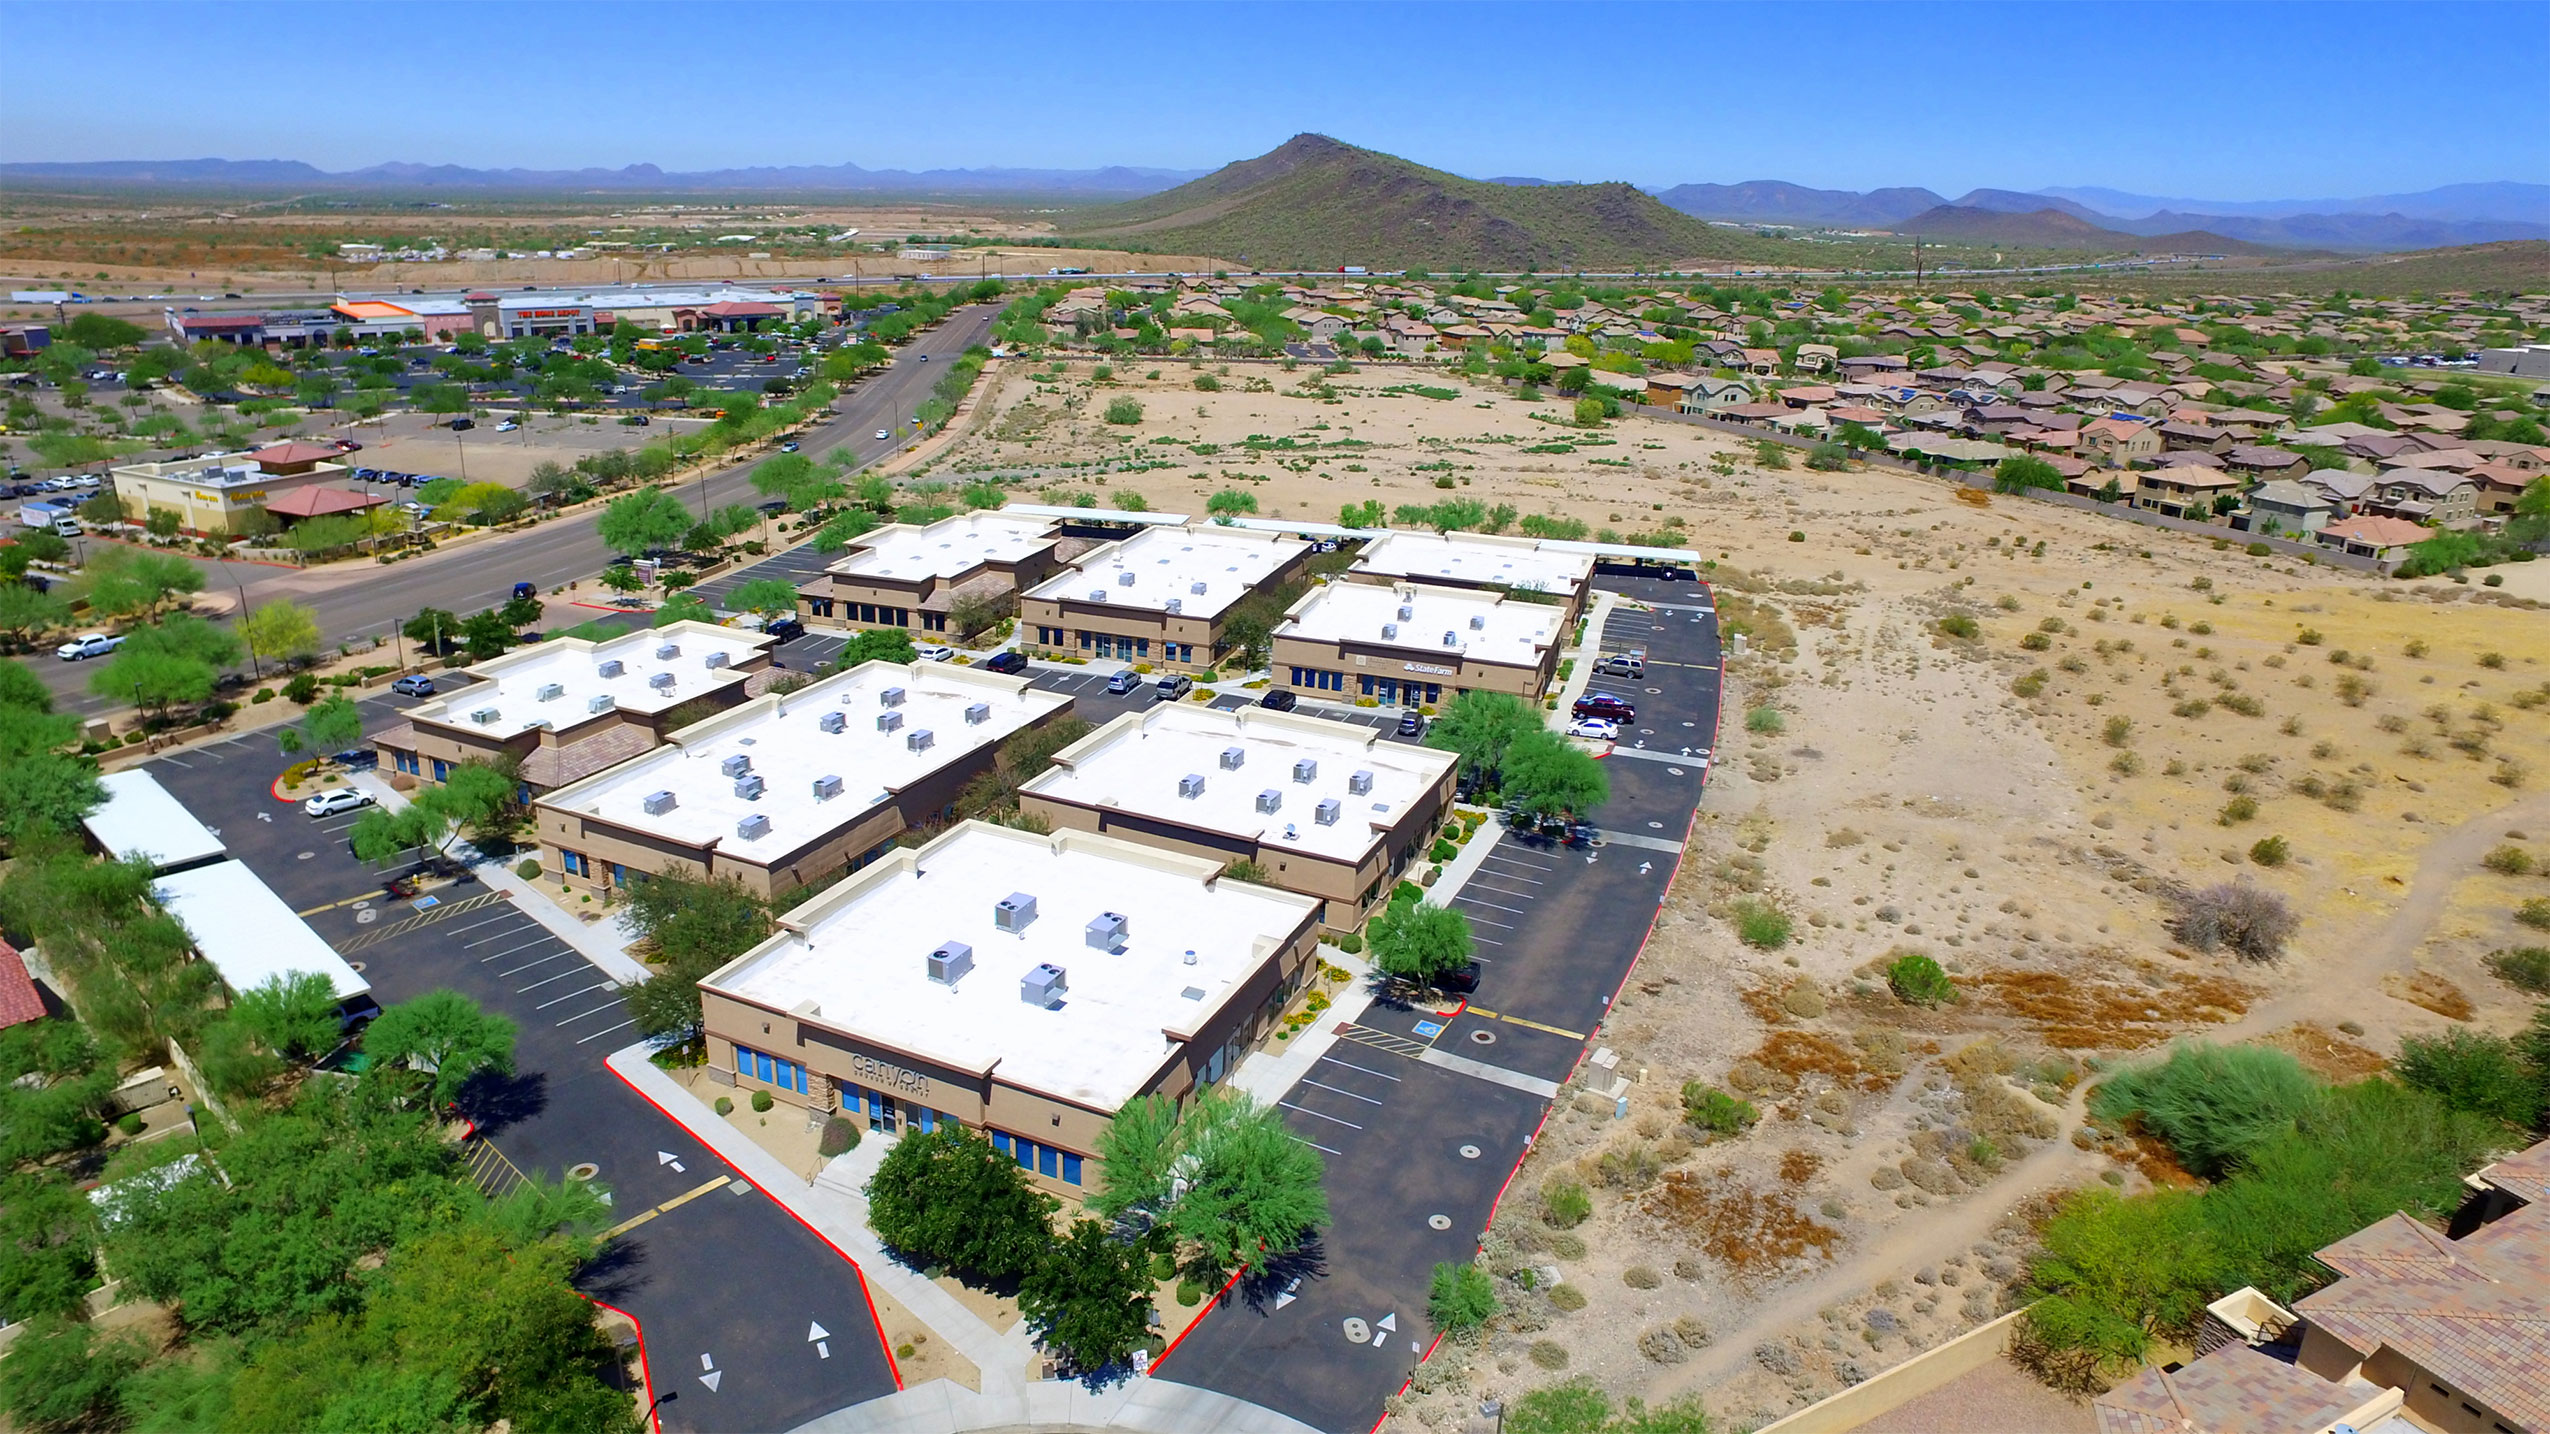 Alternative Cancer Treatment Center In Arizona